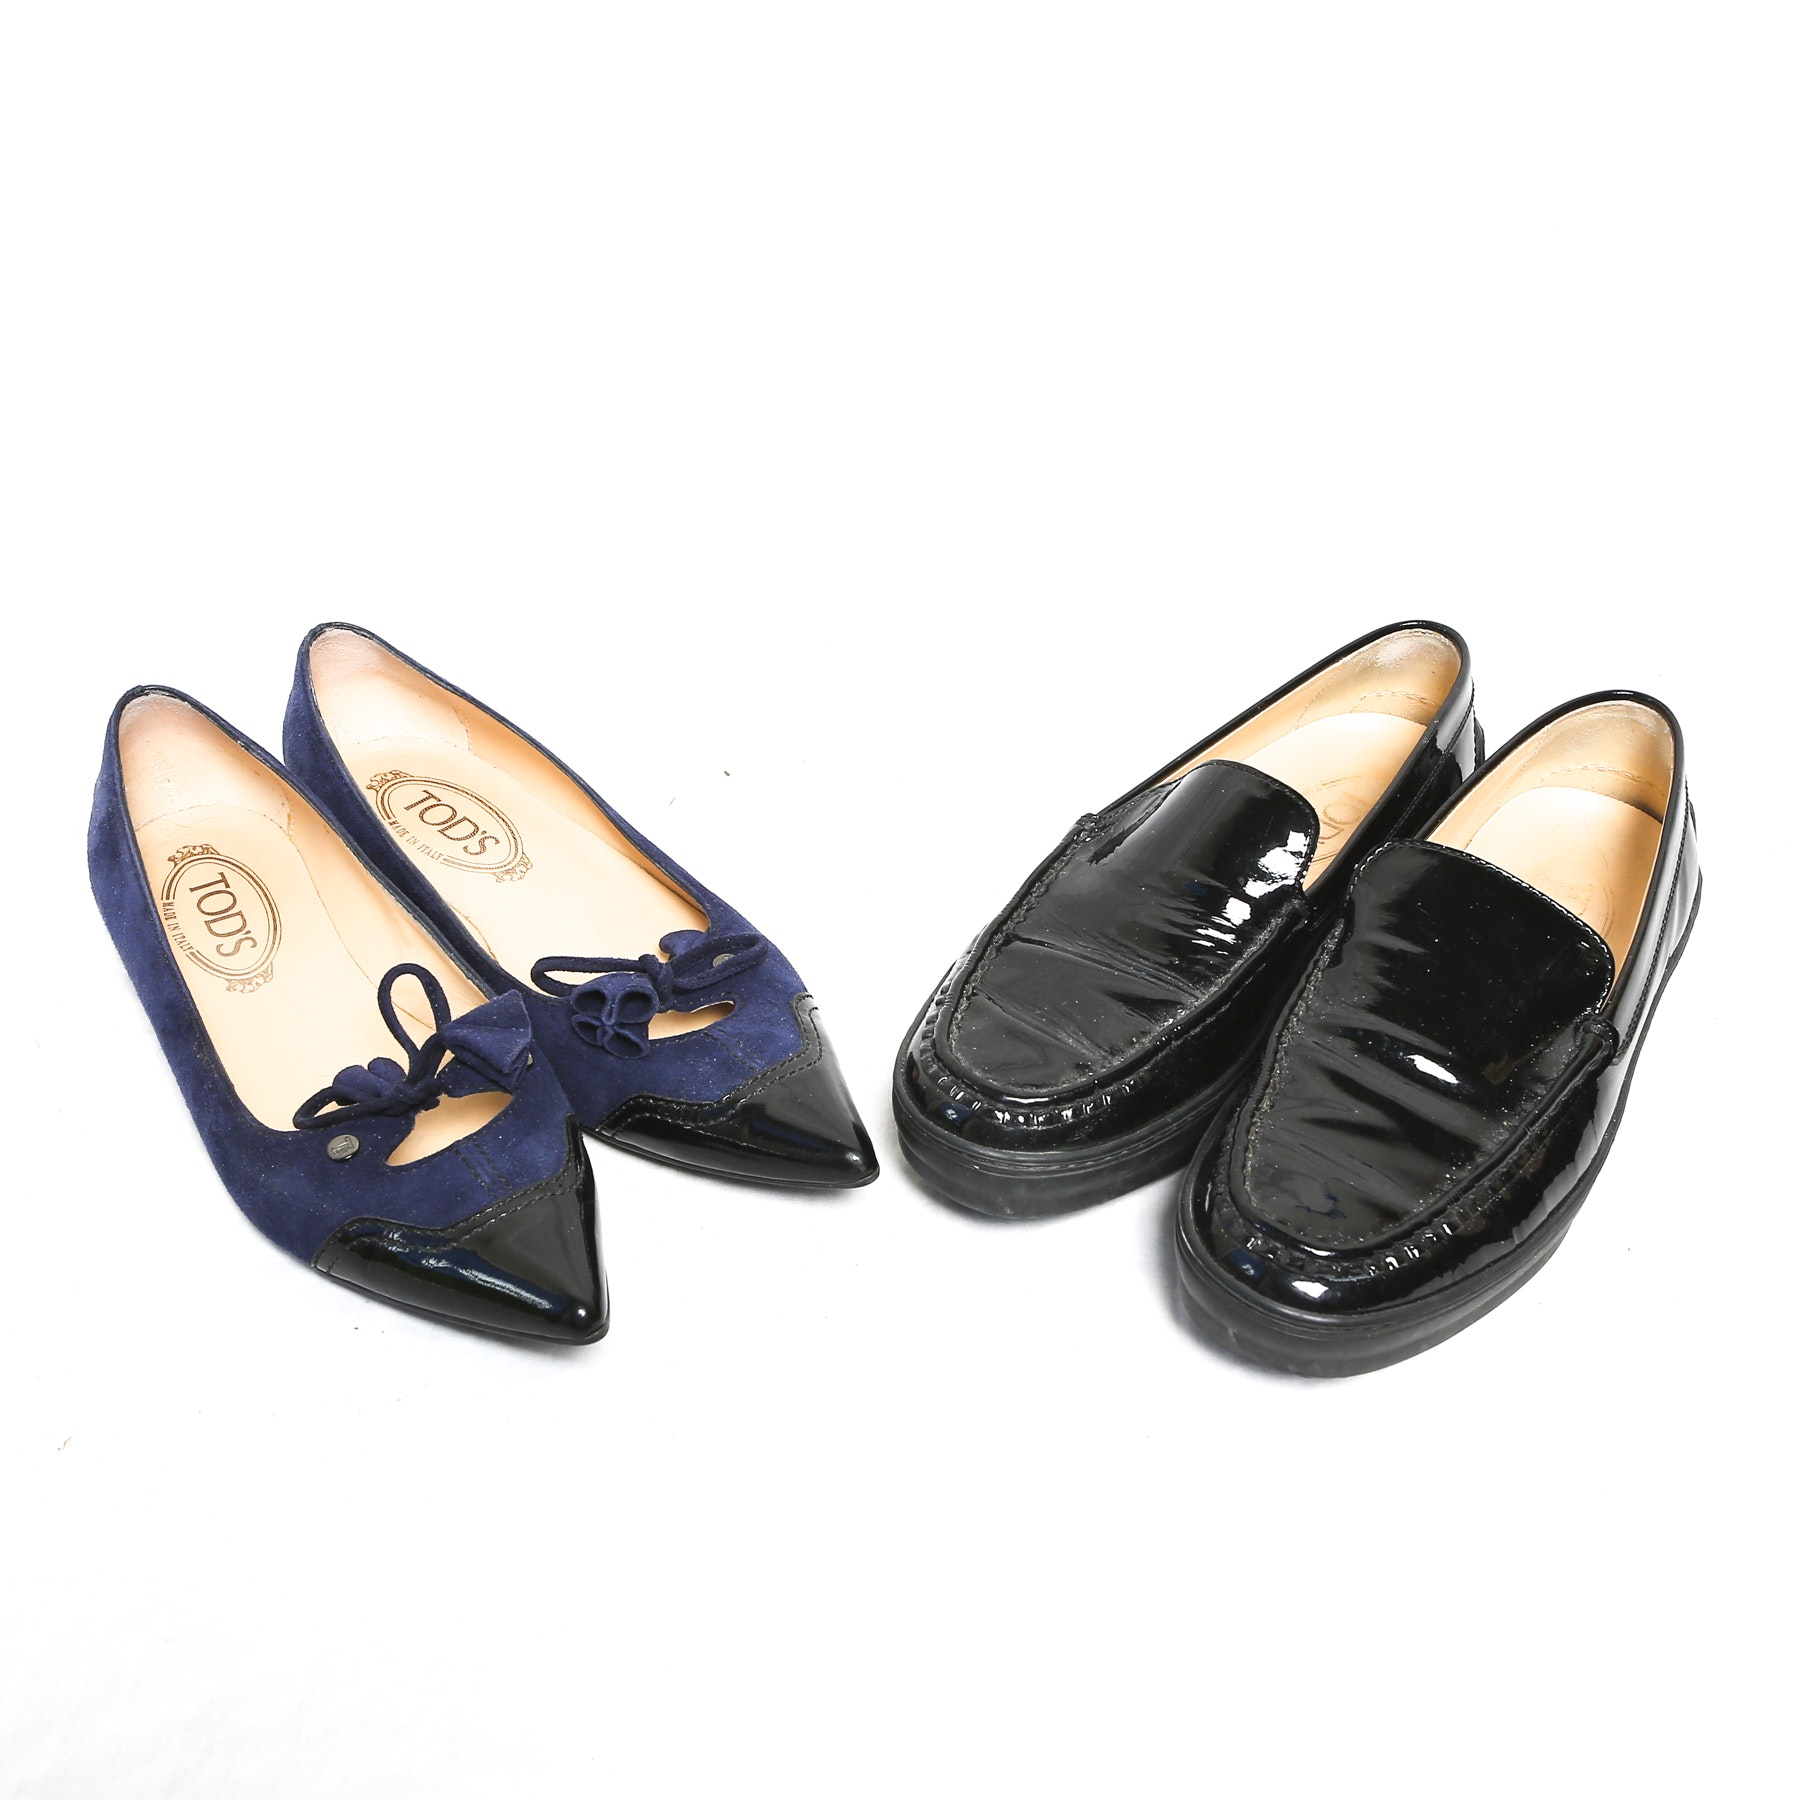 Two Pairs of Tod's Flats